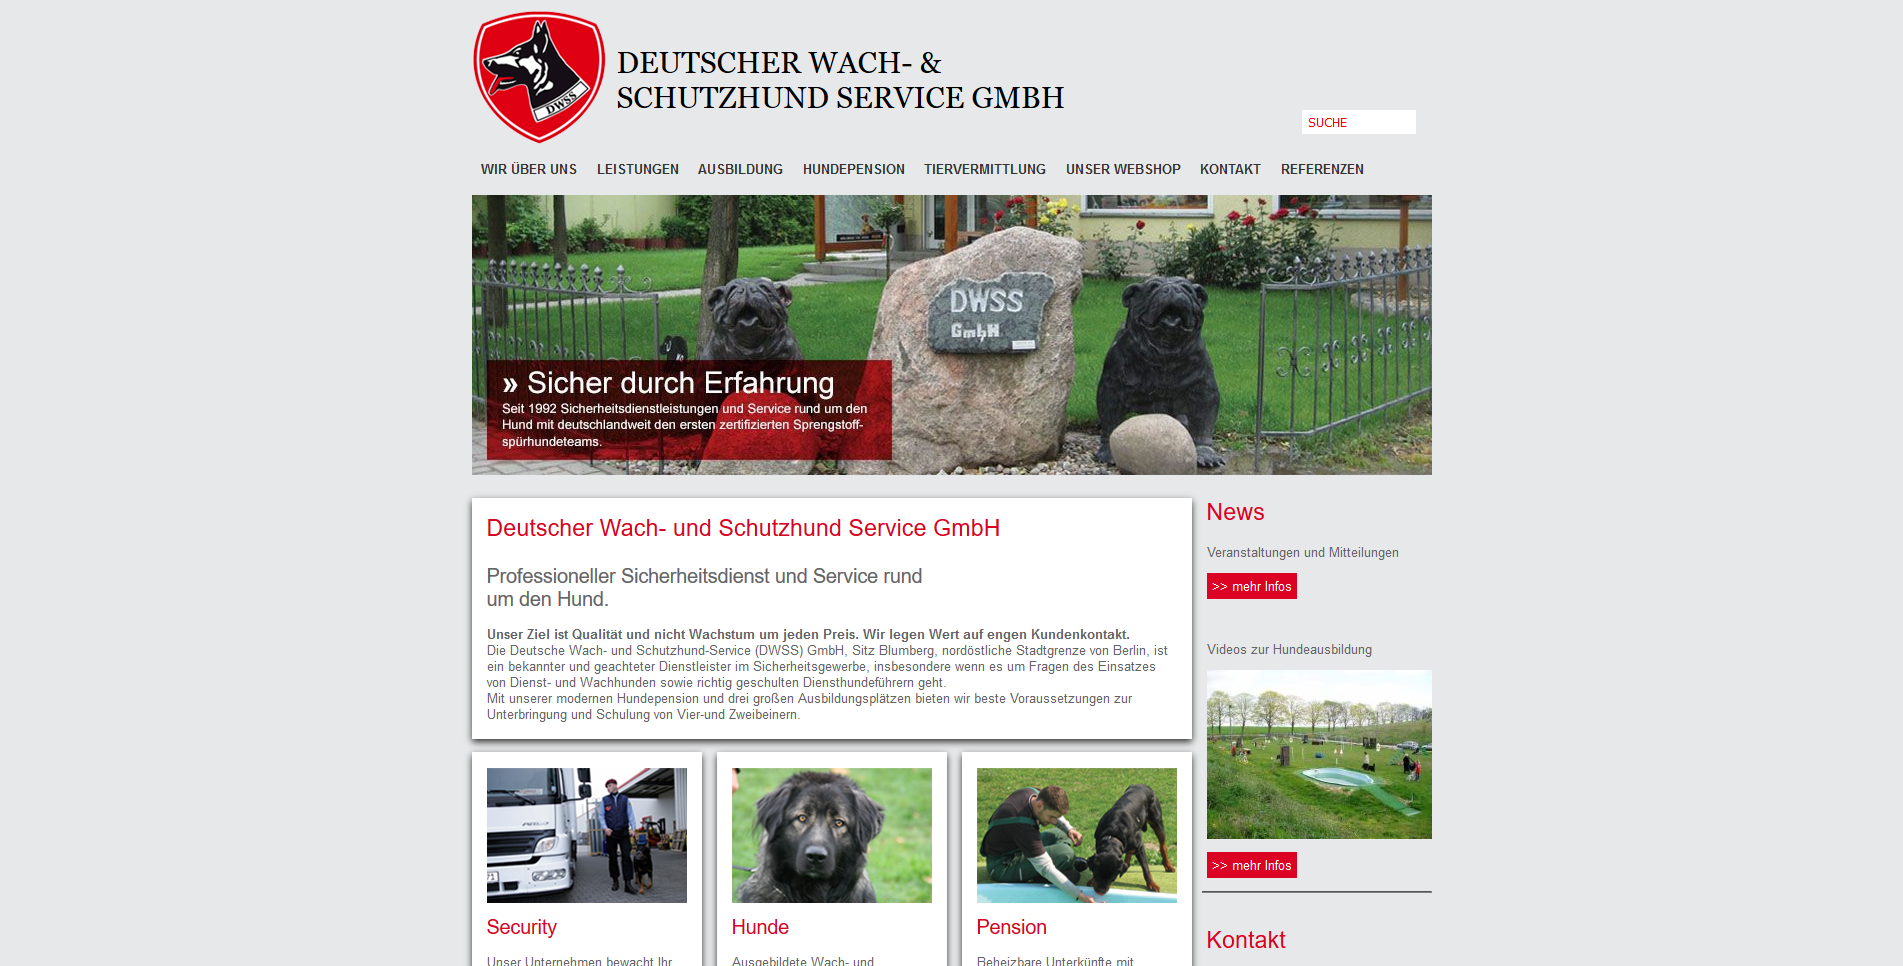 DWSS Hundepension